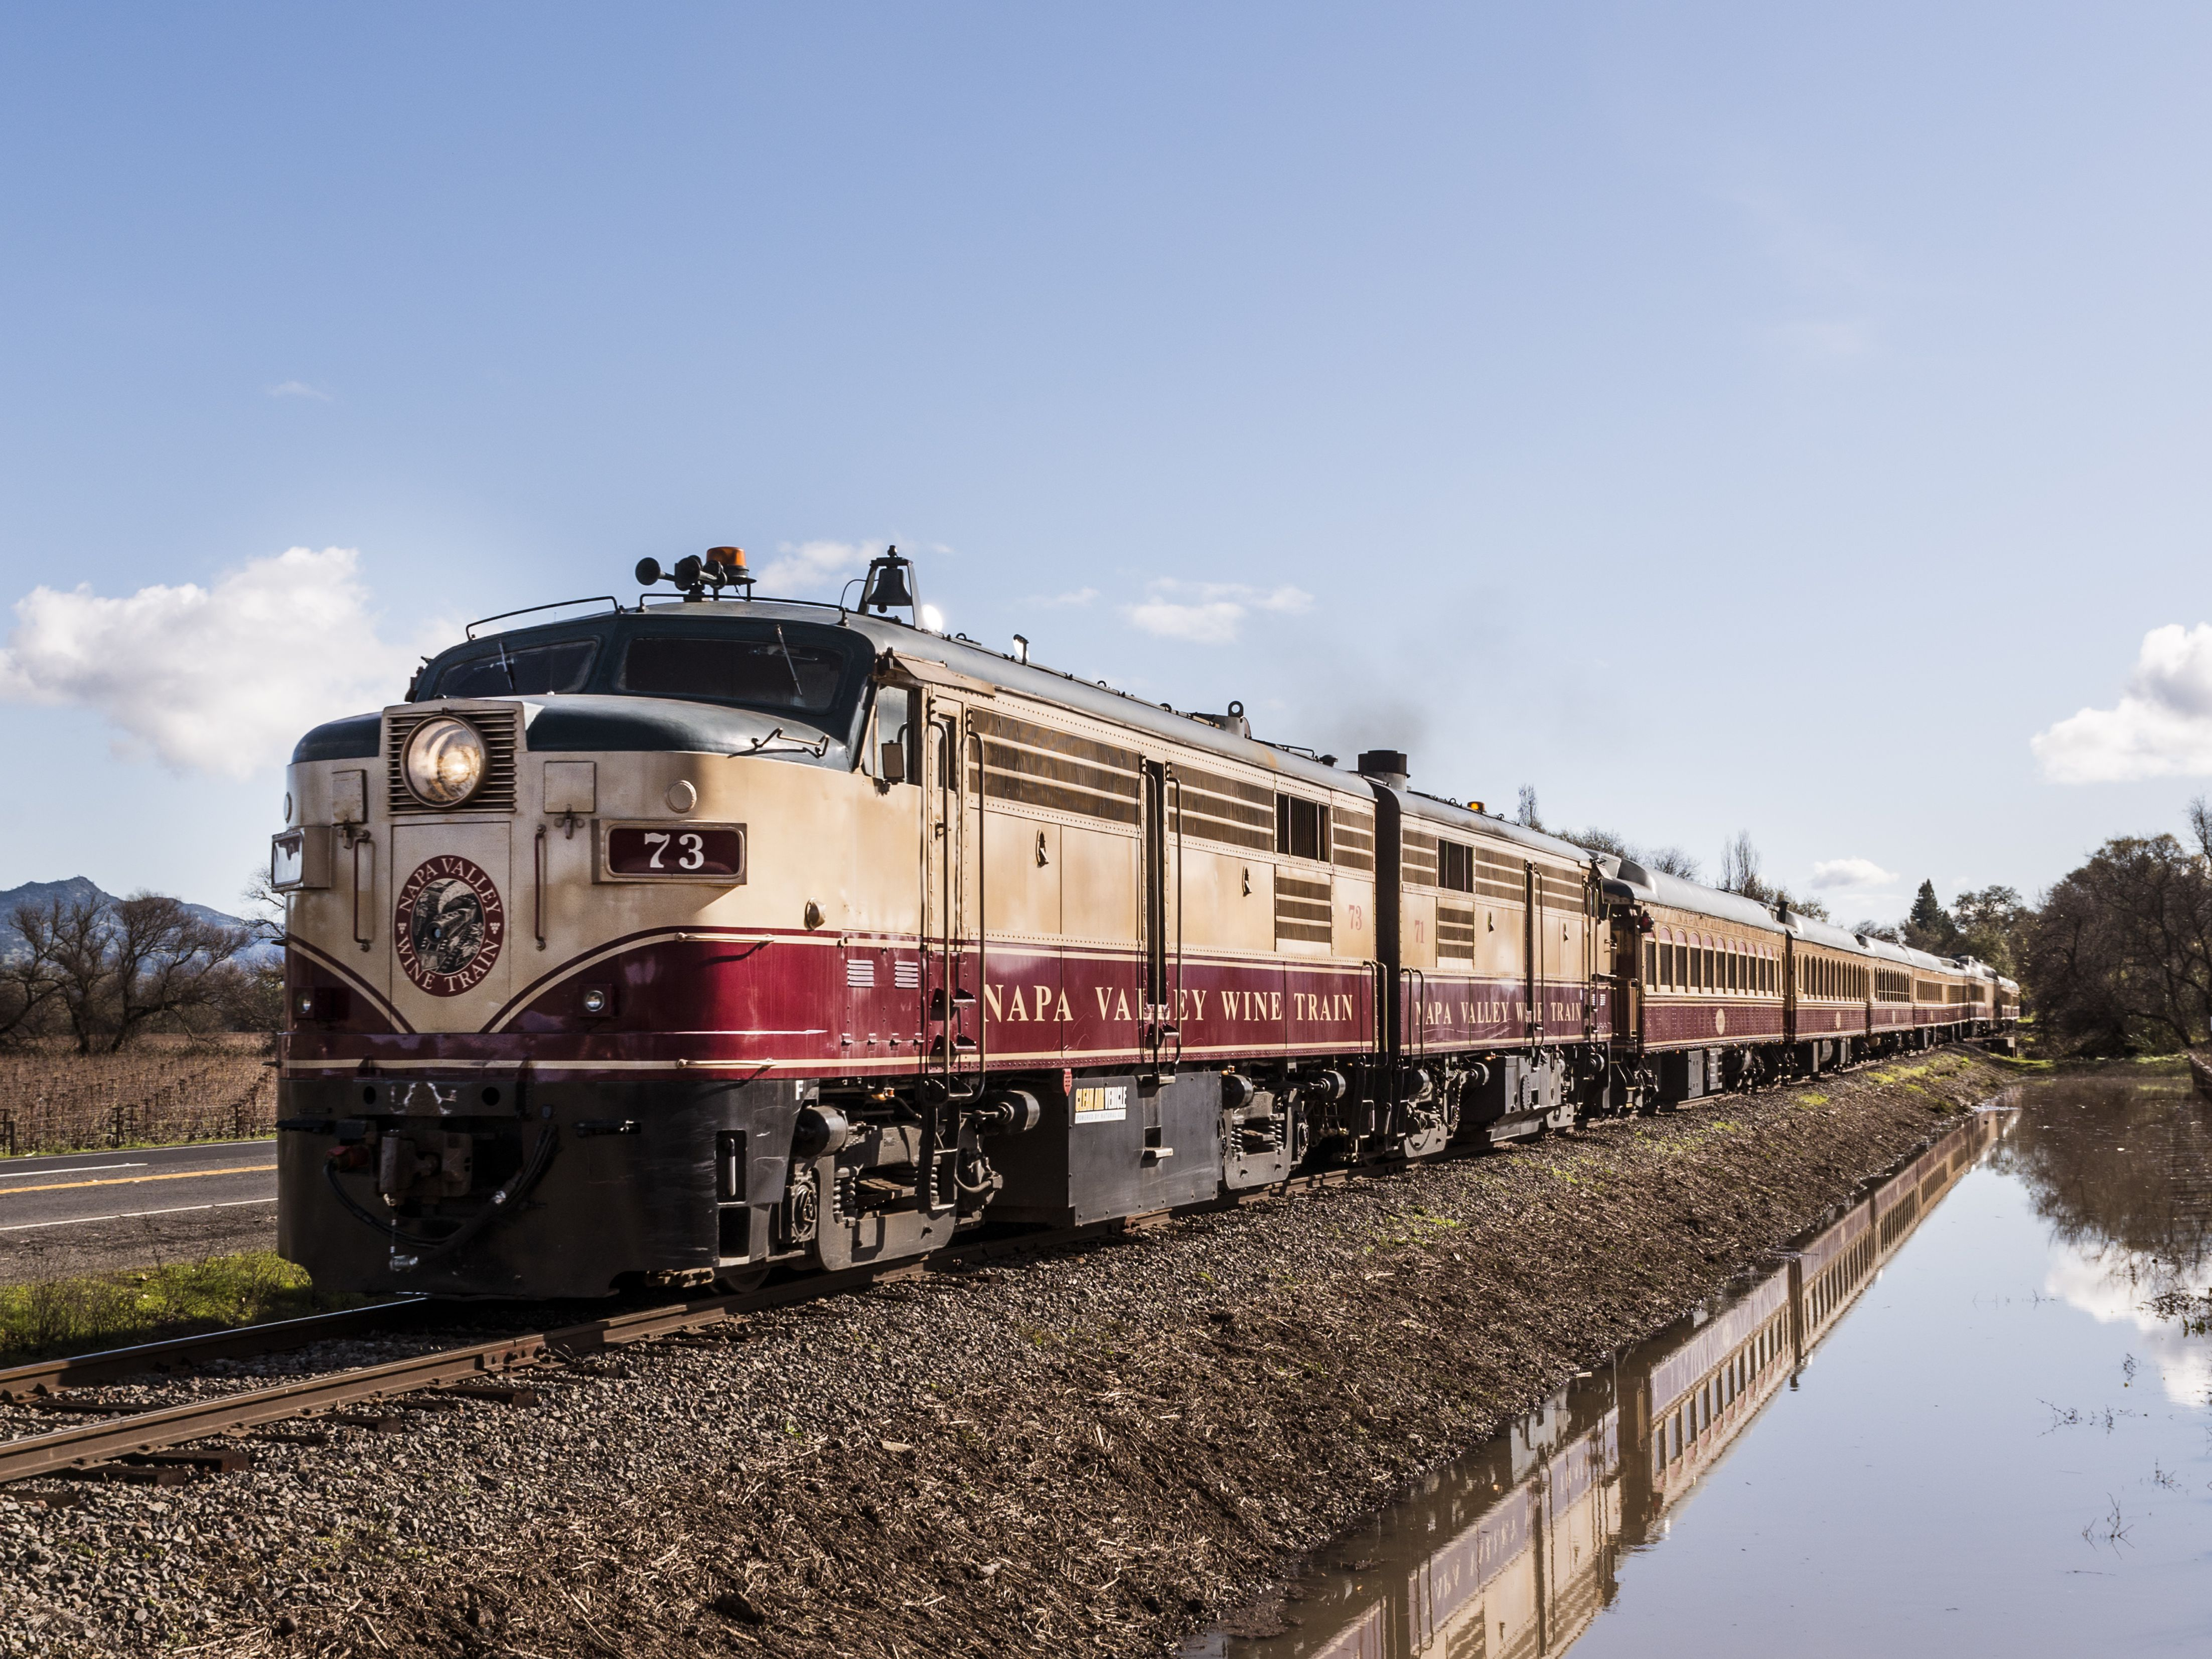 Napa Valley Wine Train: Visitor Guide and Review